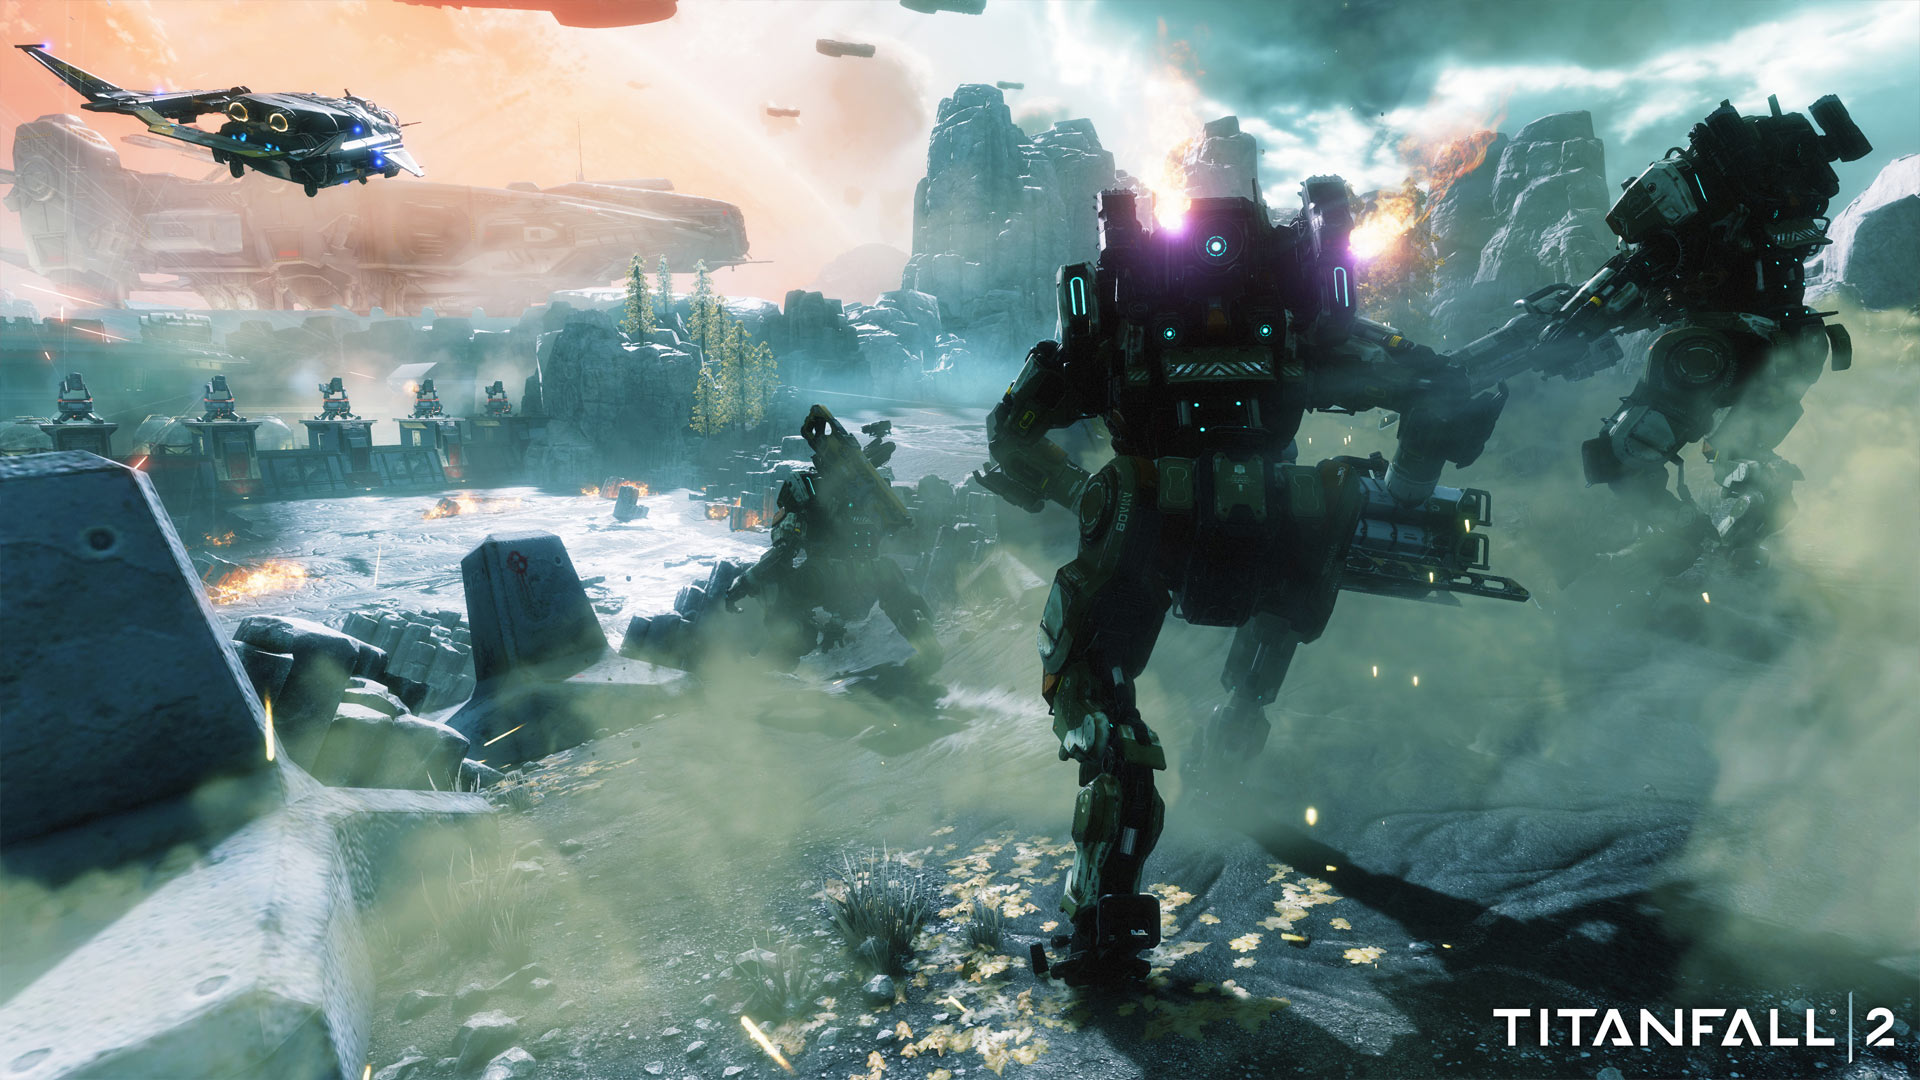 Titanfall 2 Xbox One X Enhanced Screenshot